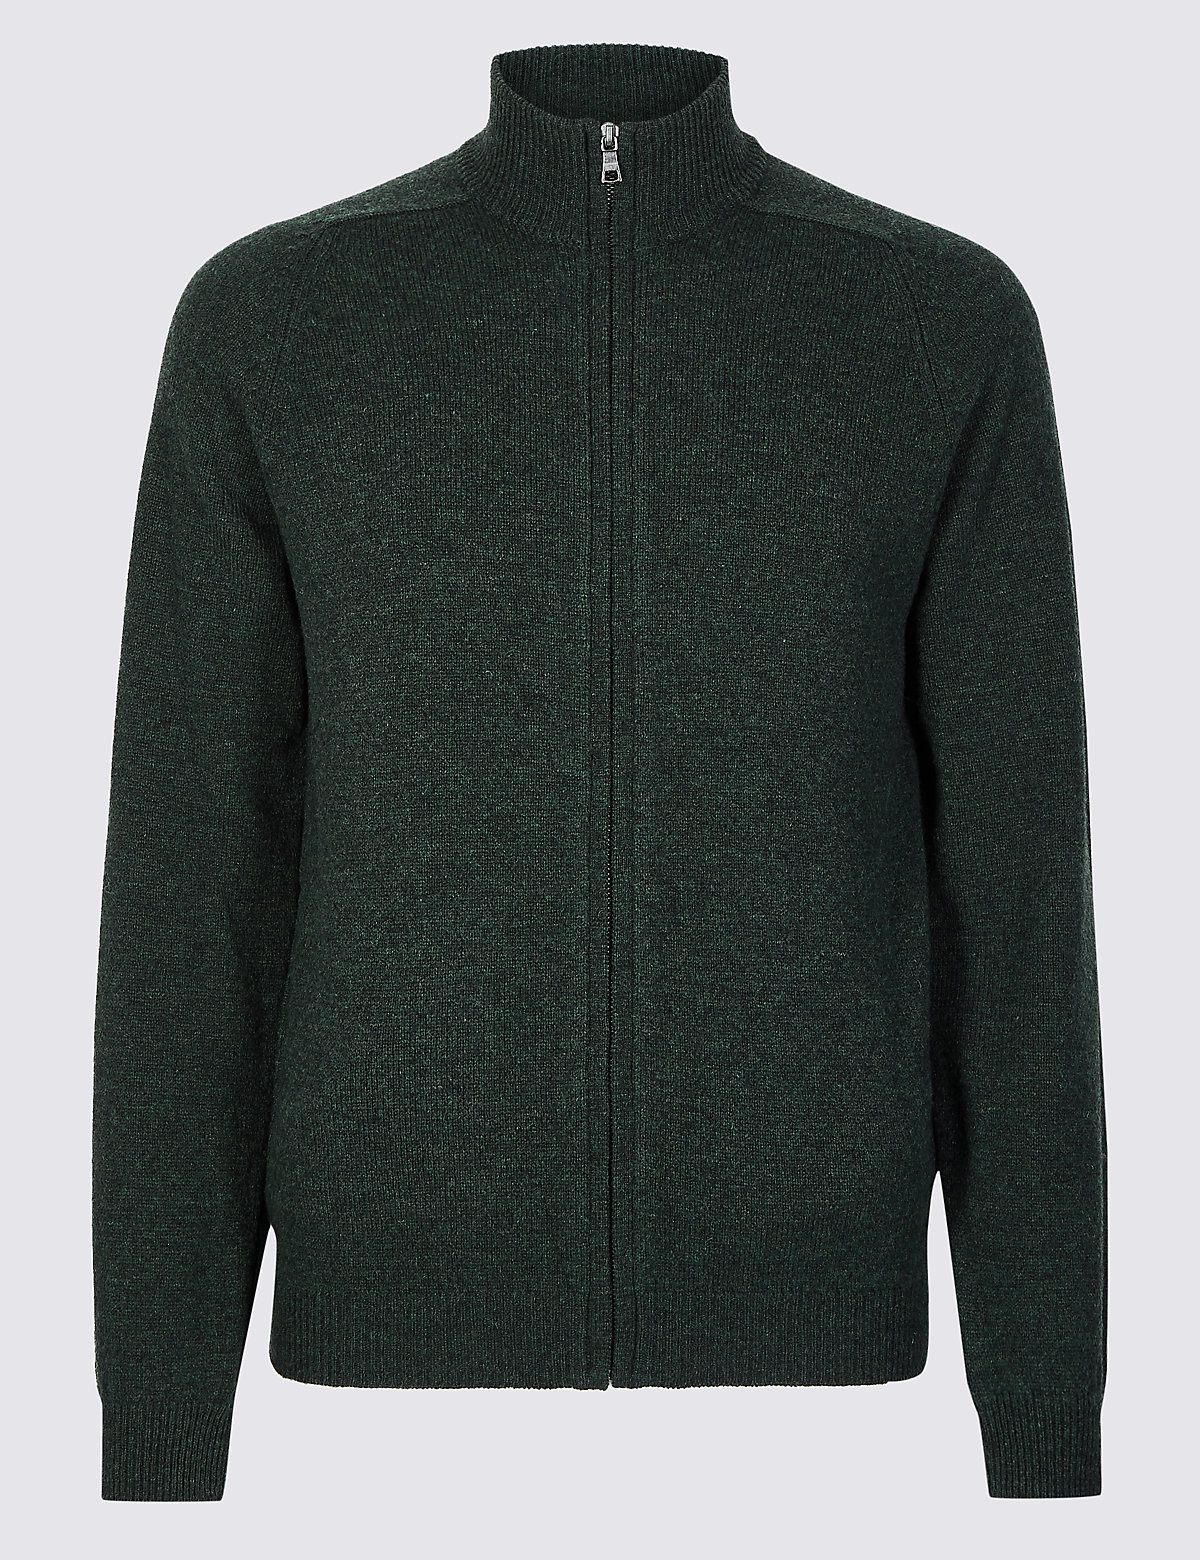 Marks & Spencer Green Pure Lambswool Textured Zip Through